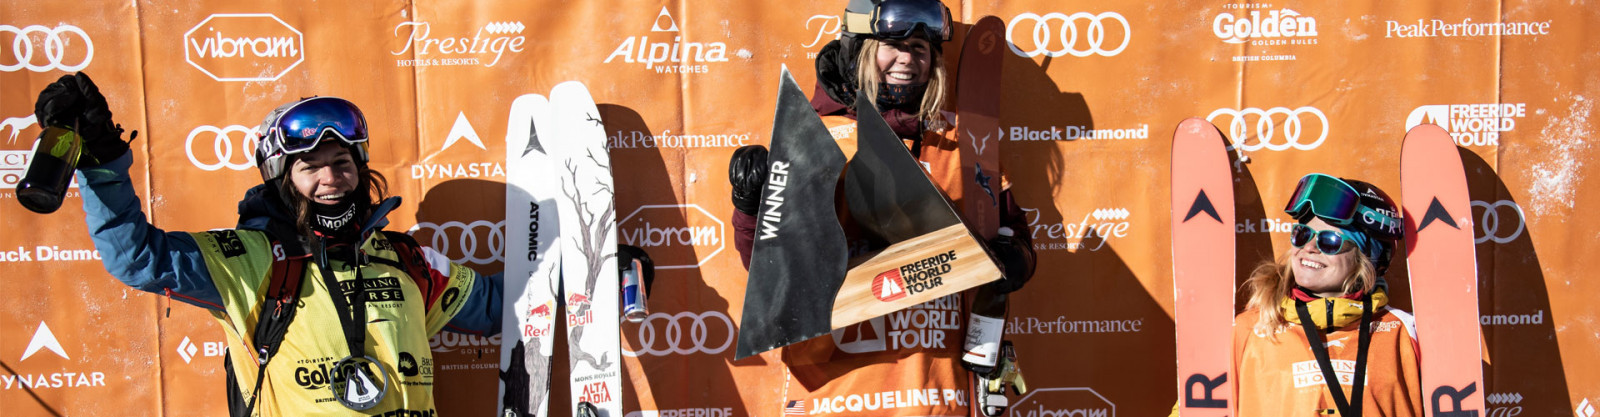 HAZEL BIRNBAUM ON THE PODIUM OF THE FREERIDE WORLD TOUR IN KICKING HORSE